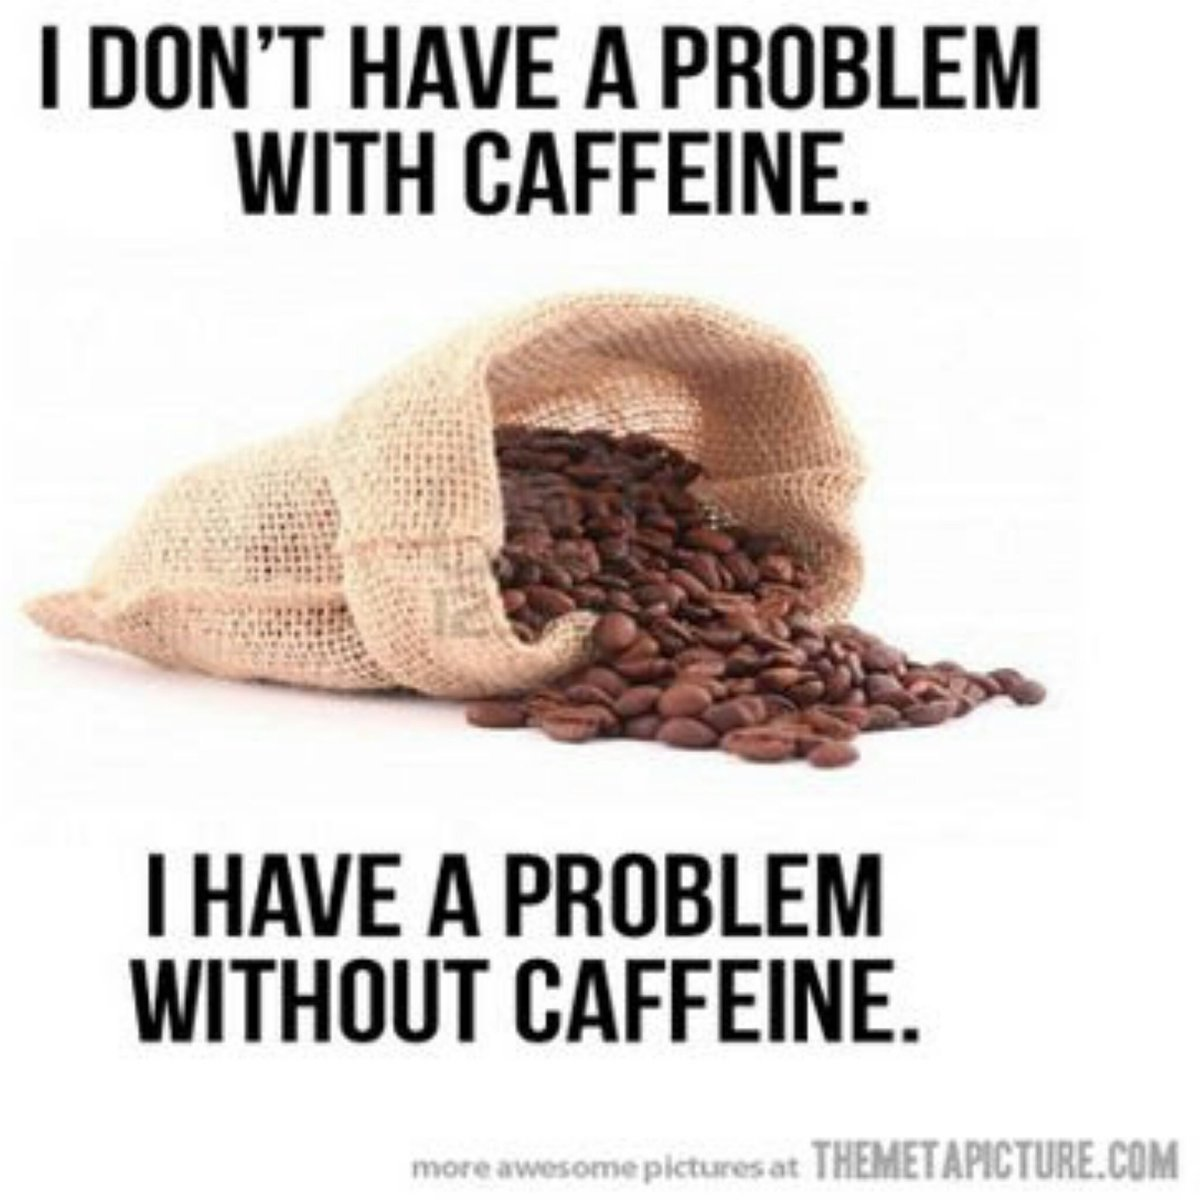 Coffee is not an option, my life depends on it #love #coffee #quote #goodmorning #coffeeaddicts<br>http://pic.twitter.com/2uUVfiWydB